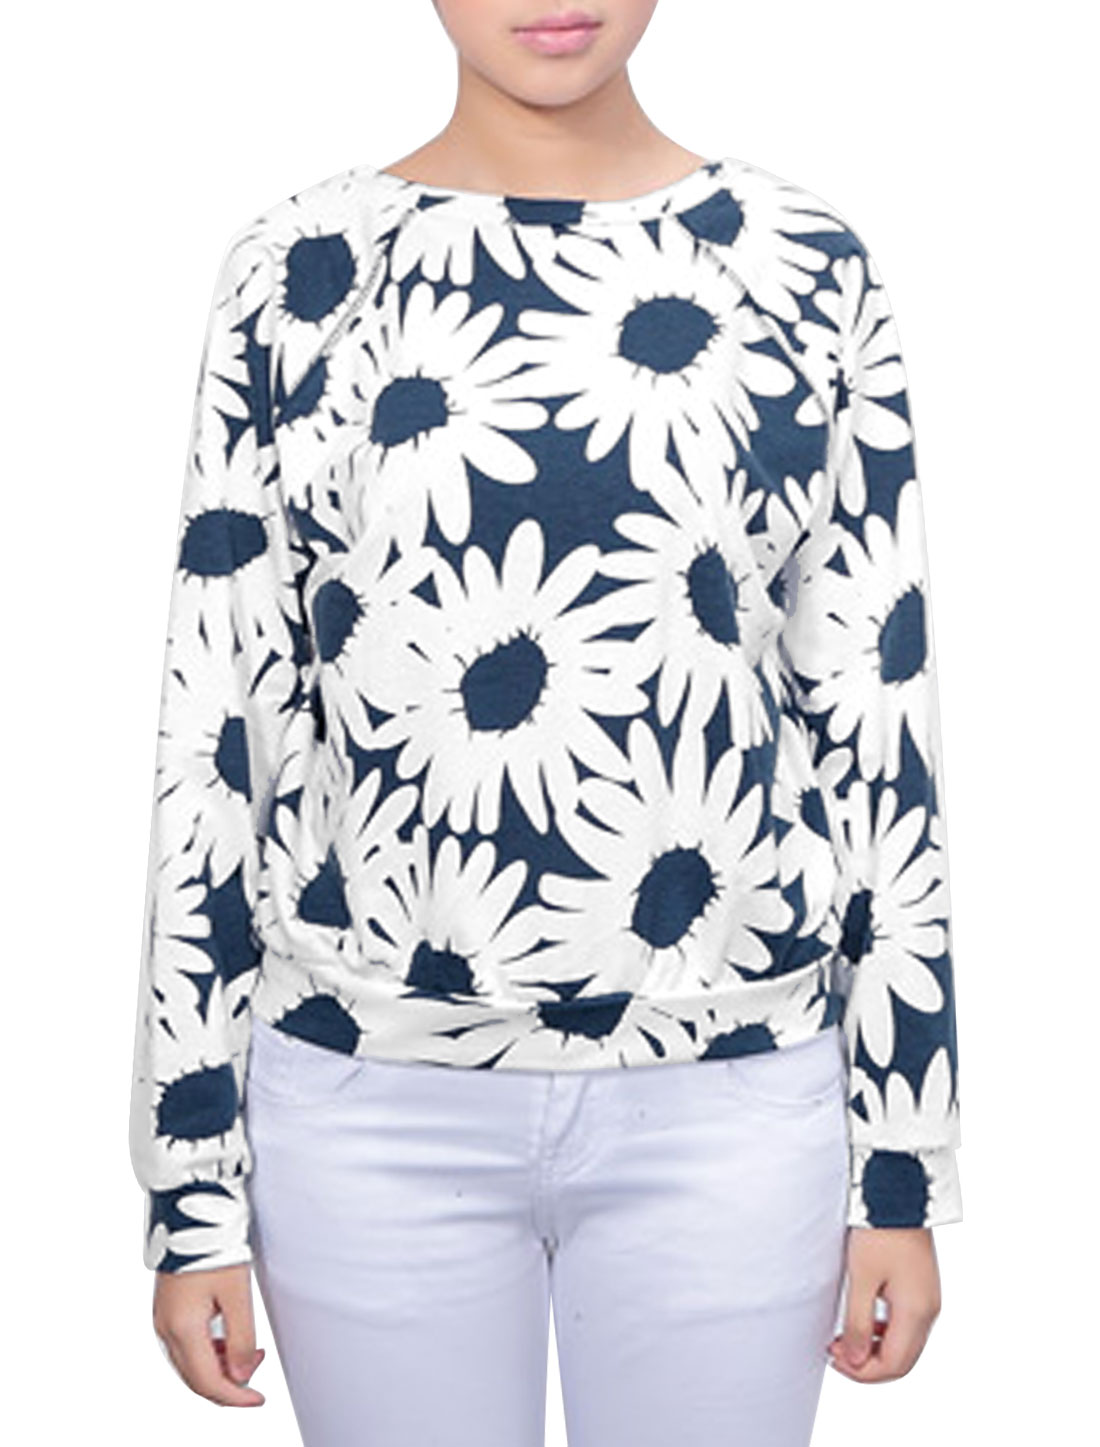 Lady Long Raglan Sleeve Flower Pattern Sweatshirt White Navy Blue S